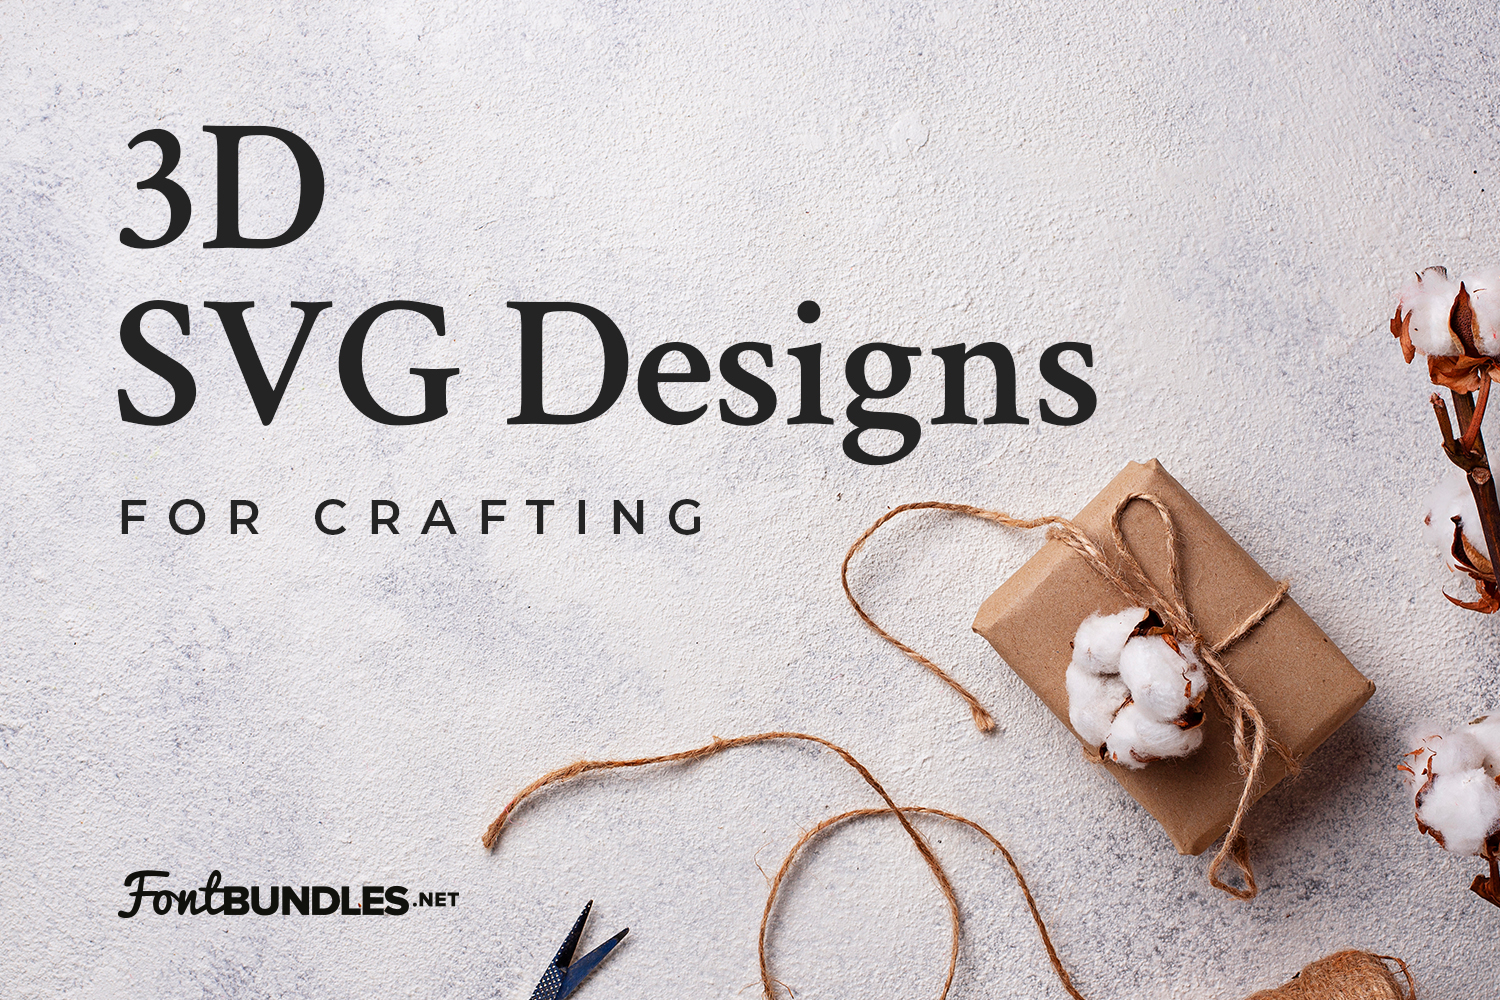 3D SVG Designs for Crafting Preview